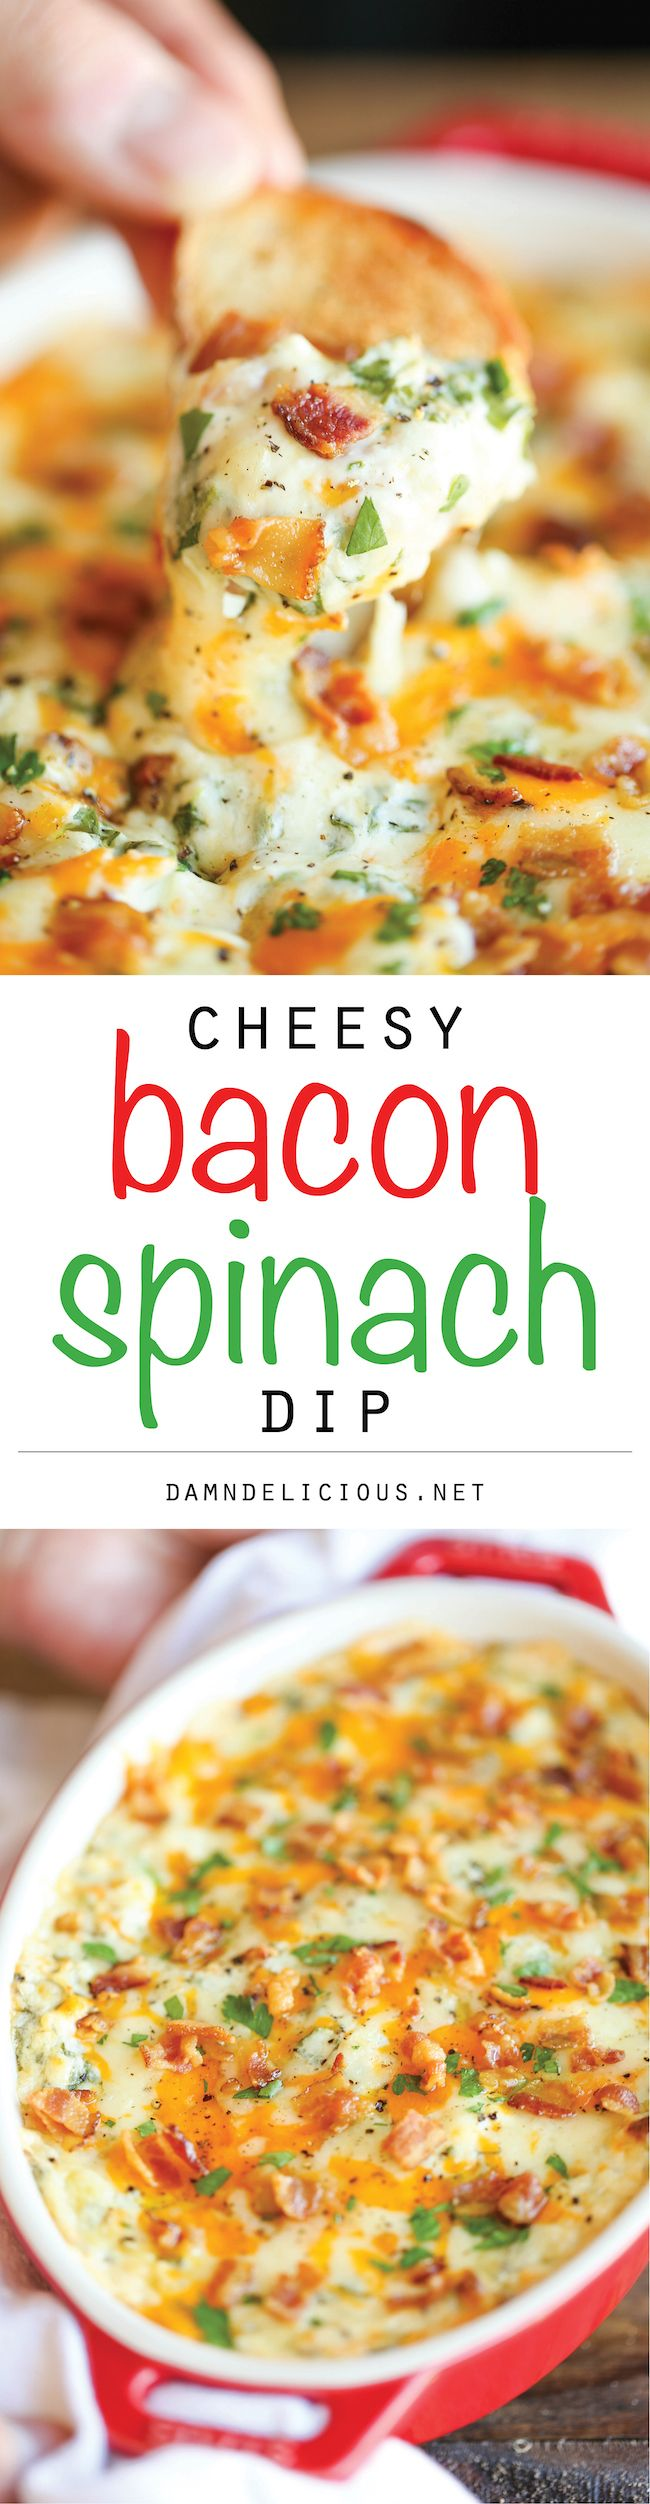 Cheesy Bacon Spinach Dip - The best and cheesiest, creamiest dip you will ever have - after all, you just can't go wrong with bacon! @damndelicious